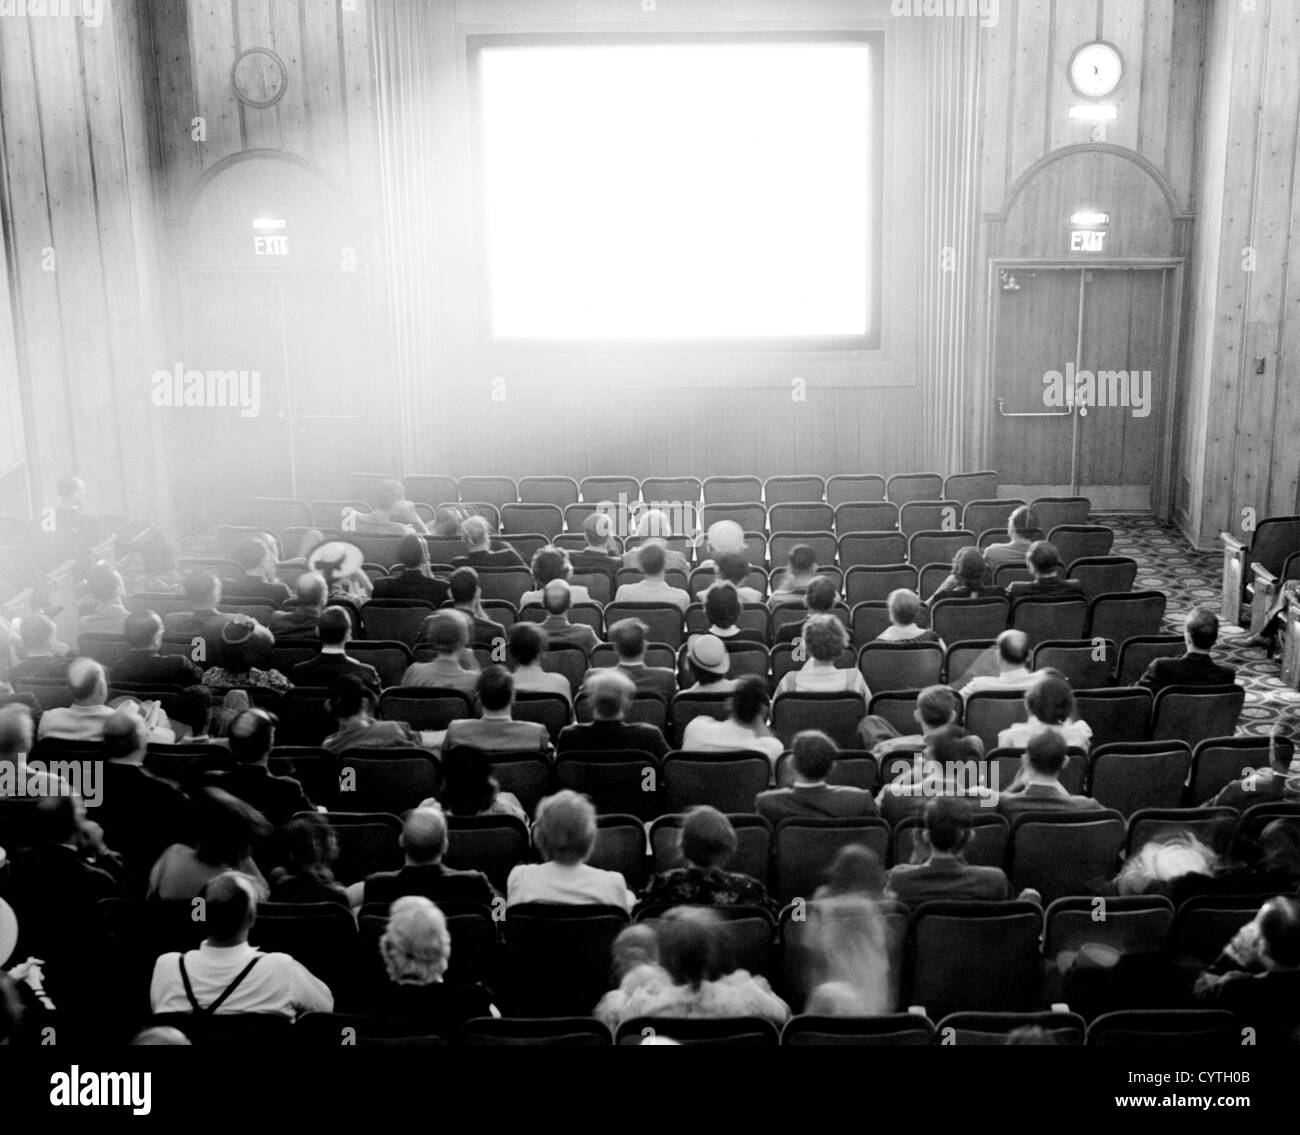 Couples in a theater preparing to watch a film - Stock Image